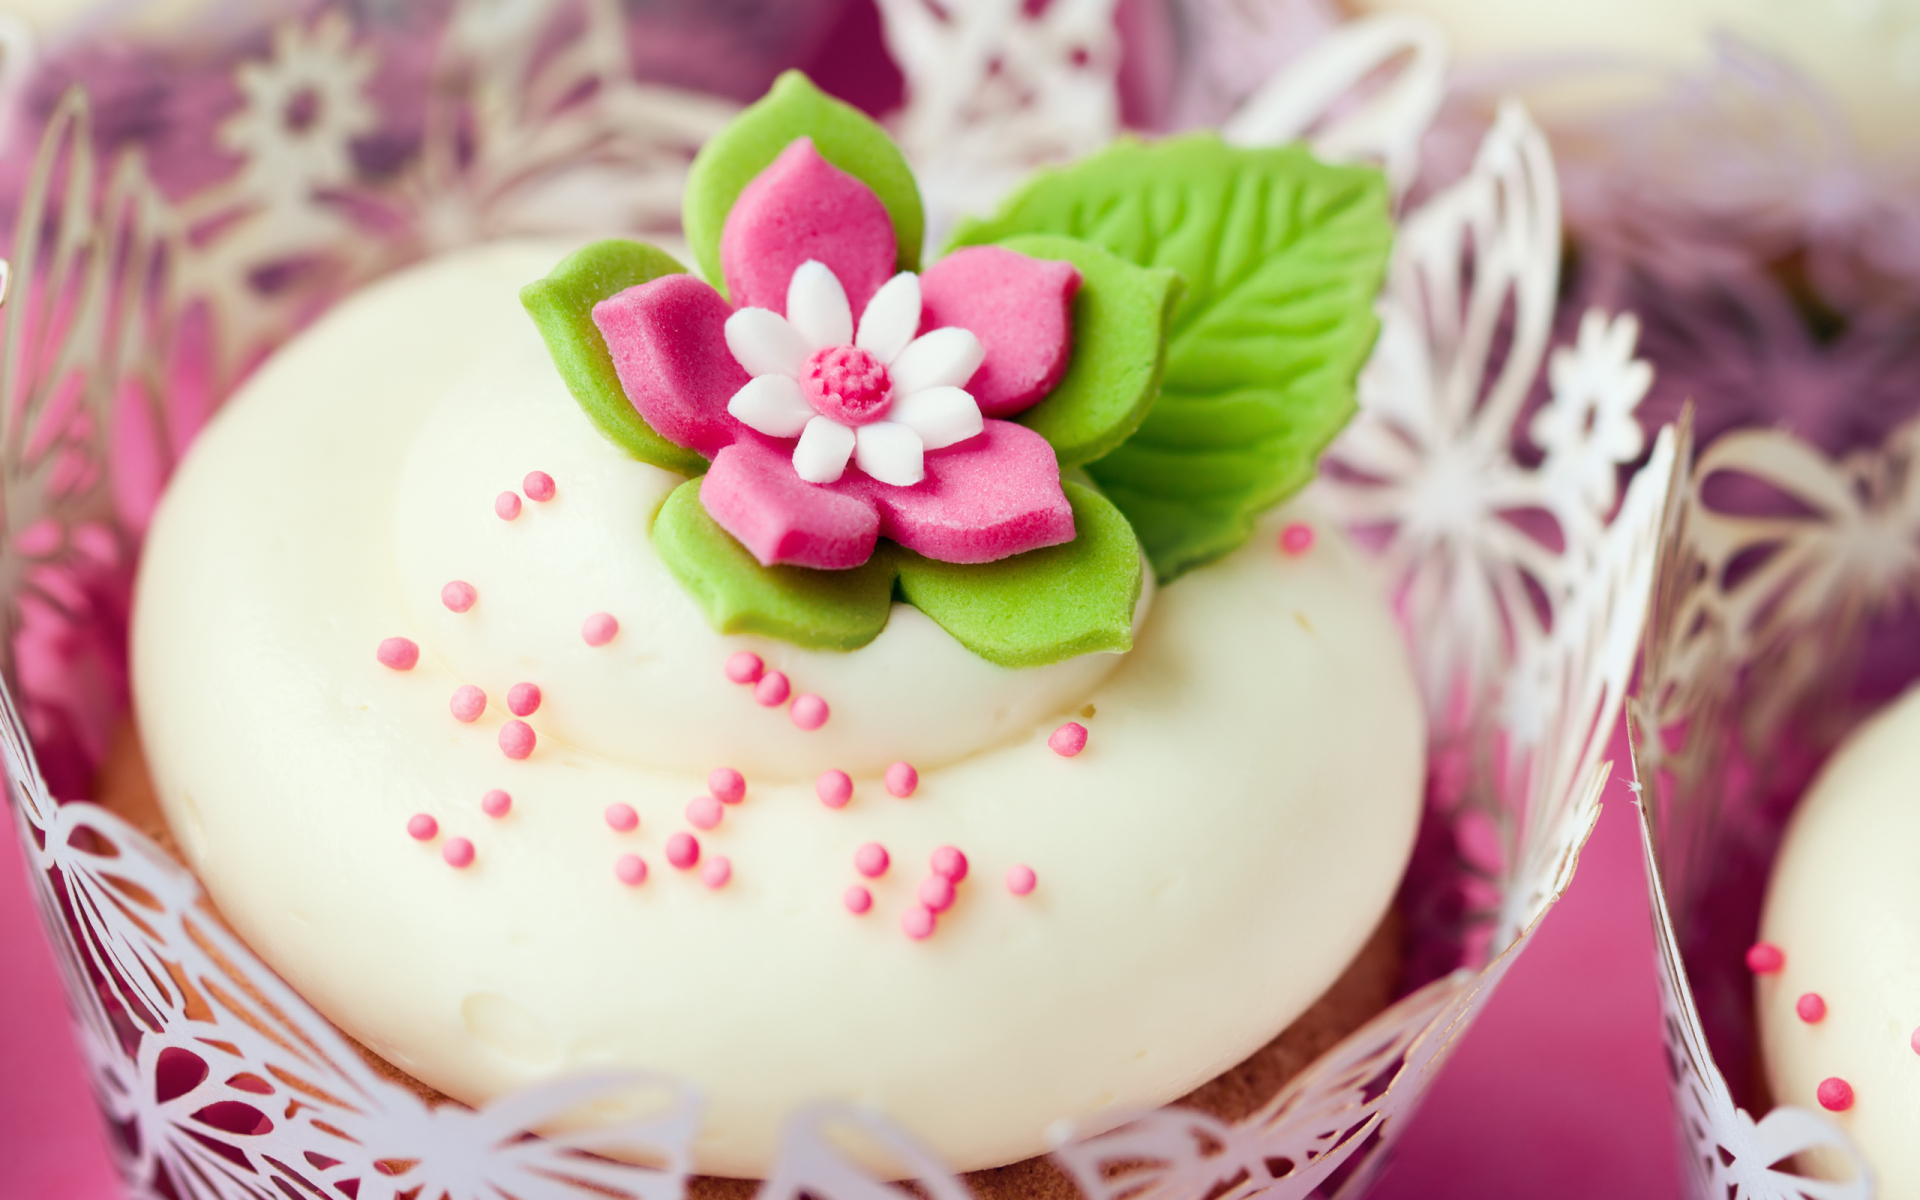 cupcake frosting wallpaper hd 43582 1920x1200 px